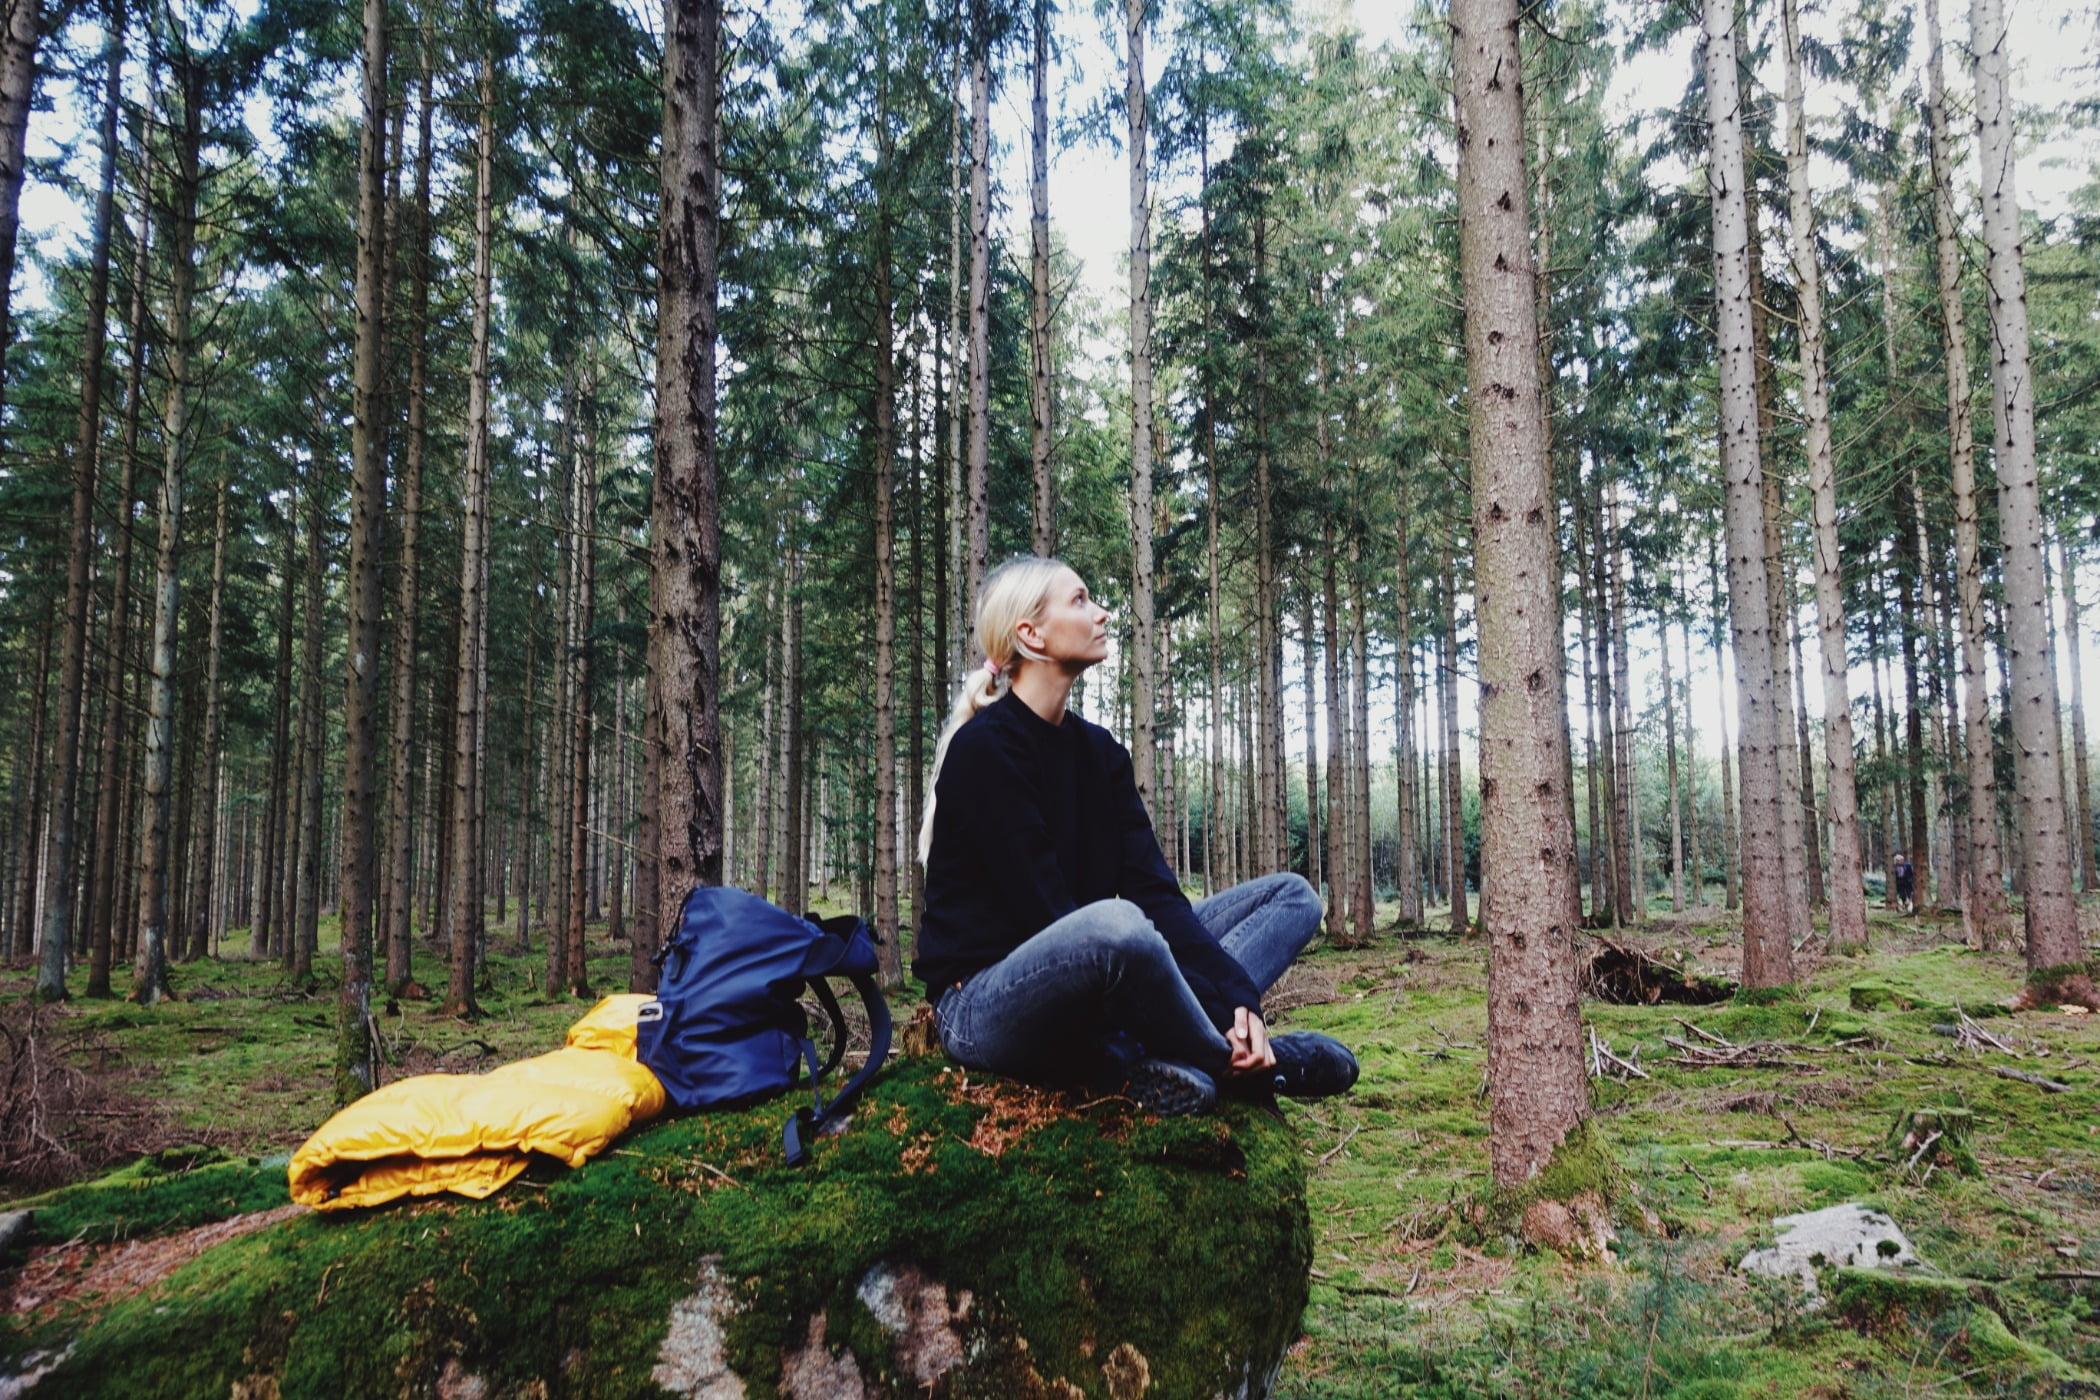 People in nature, Plant community, Natural landscape, Ecoregion, Wood, Branch, Tree, Trunk